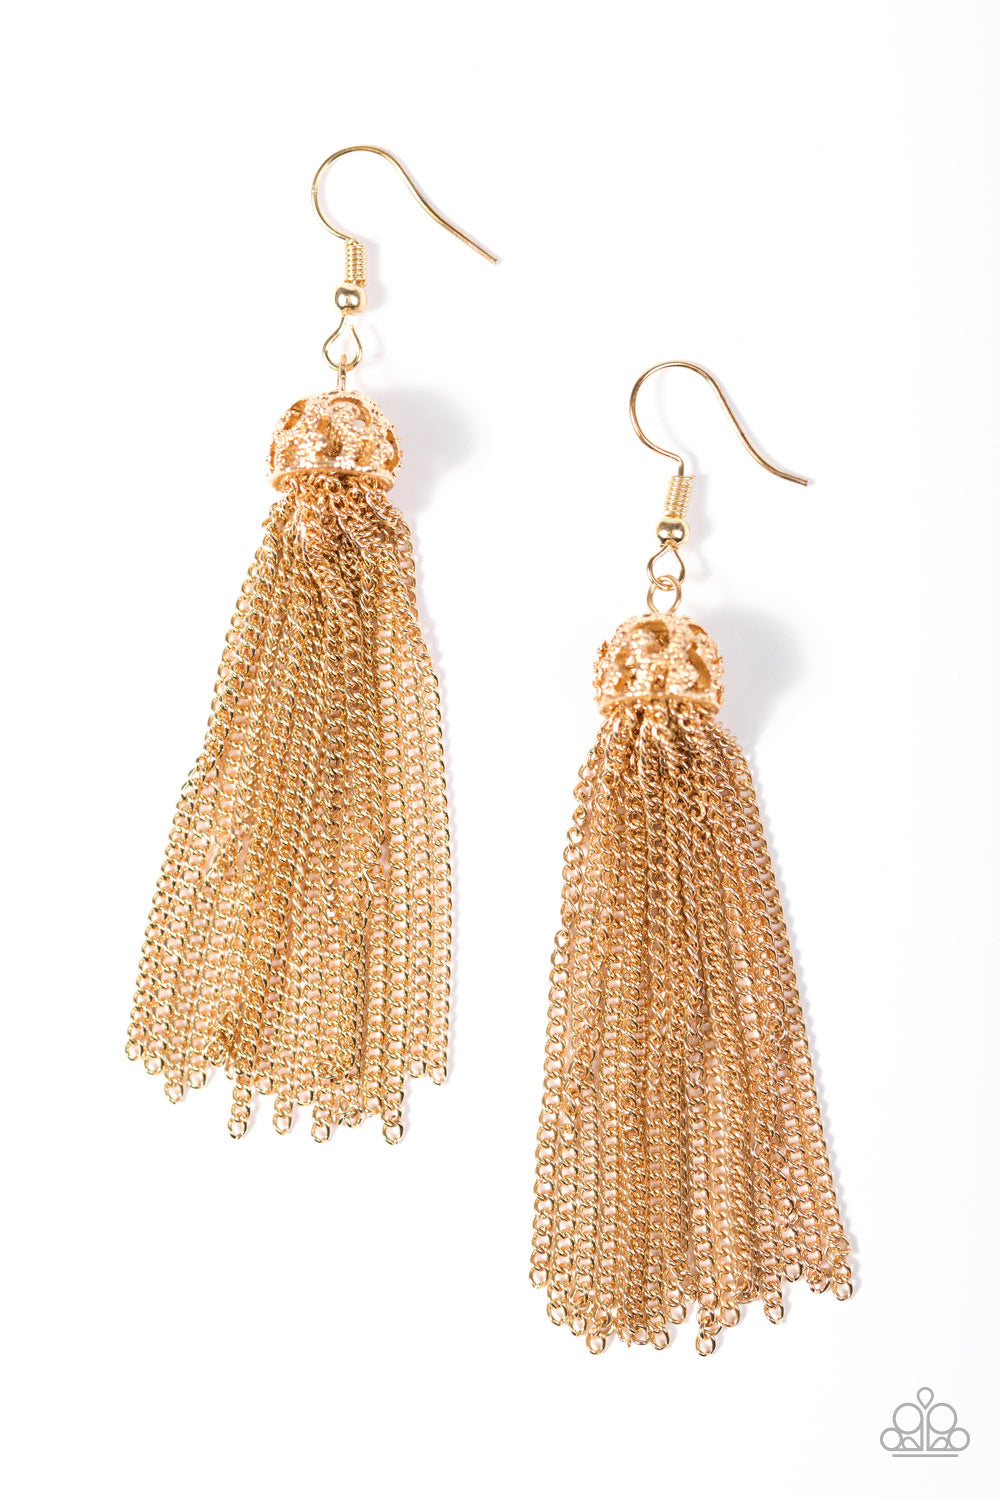 Oh My Tassel - Gold Earrings - Paparazzi Accessories